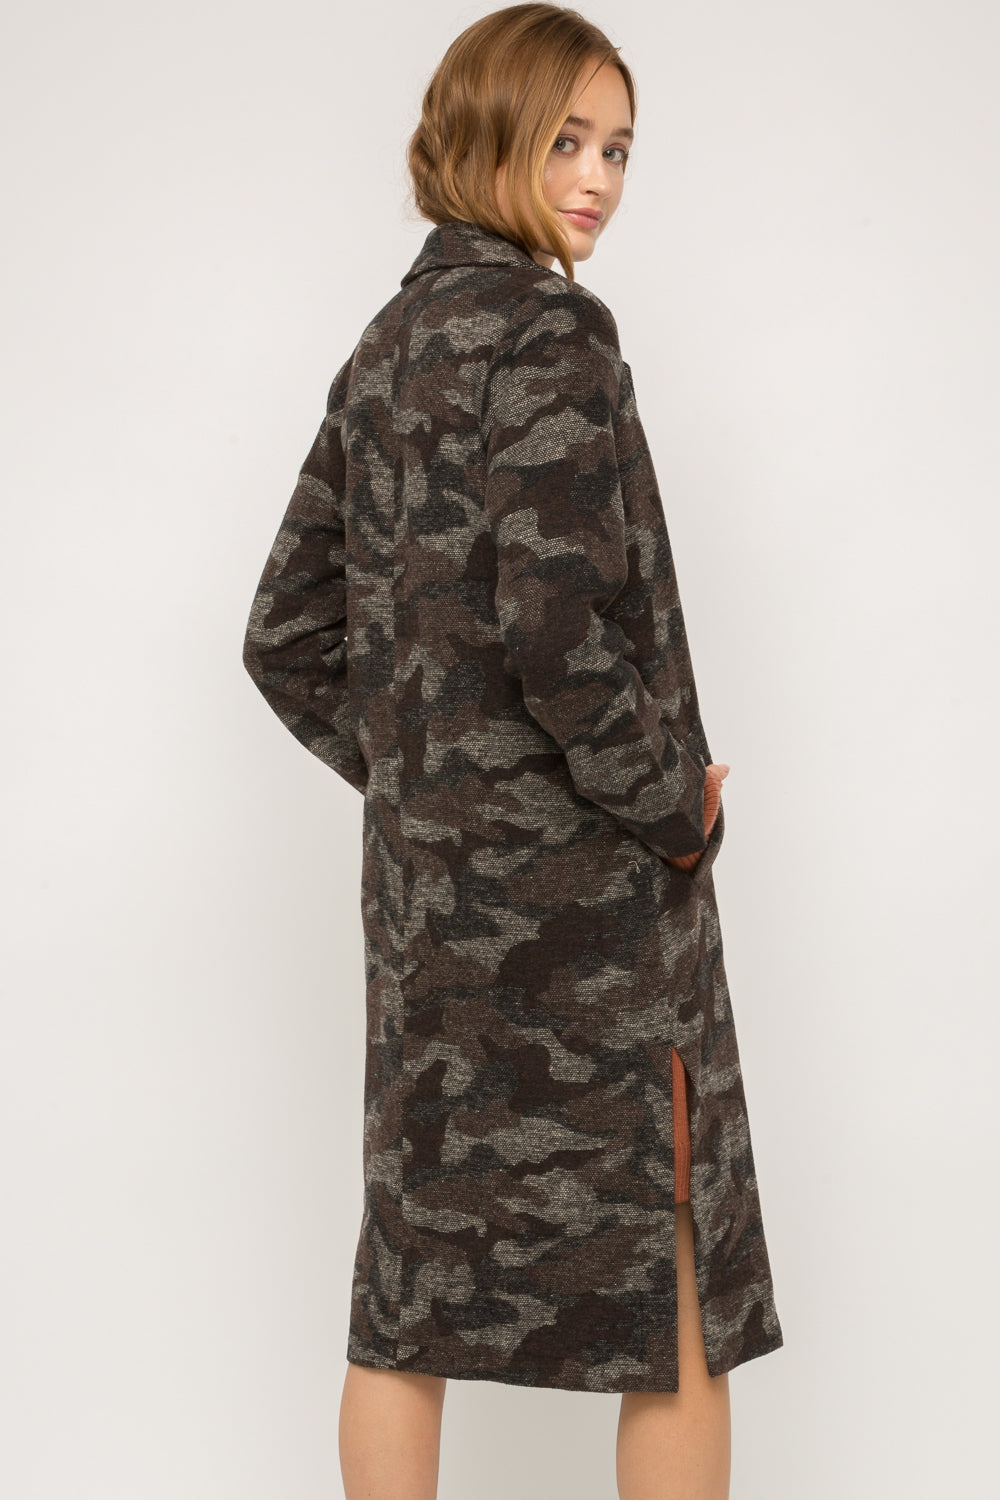 Mystree Camo Long Coat. Camo long coat Button-front closure Side pockets Side slits detail Fully lined -100% Polyester -Contrast: 100% Polyester -Lining: 100% Rayon  Edit alt text